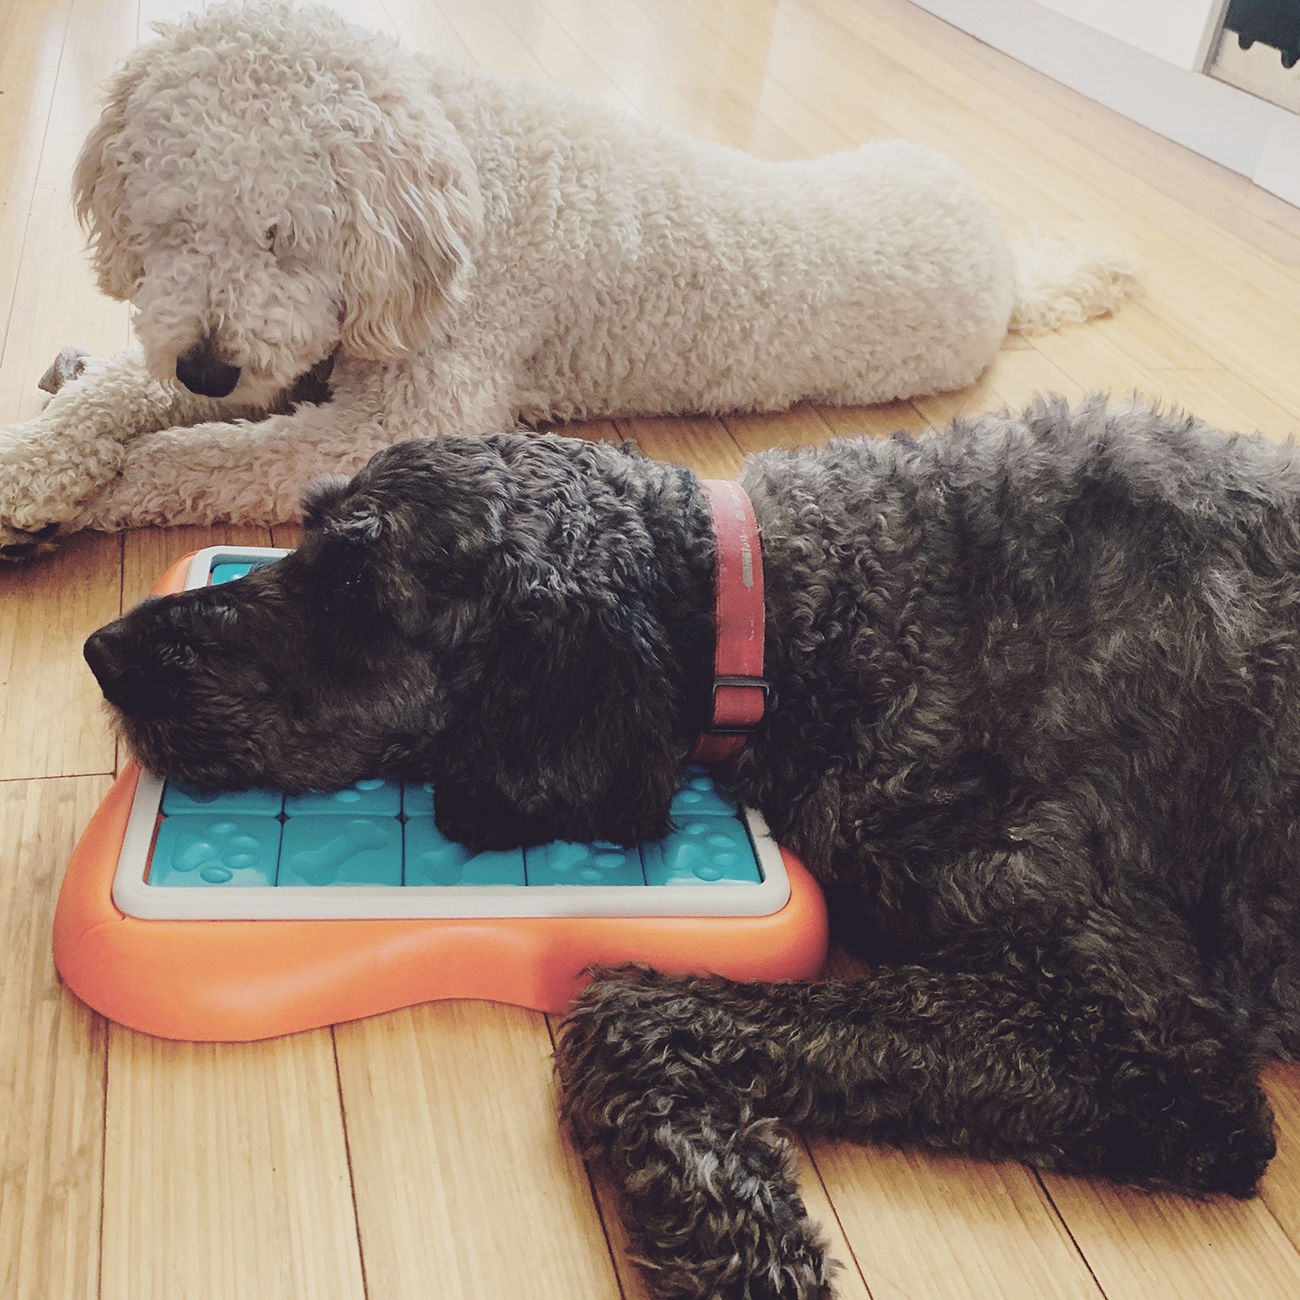 White curly haired dog looks at black curly haired dog, who is lounging on a dog puzzle